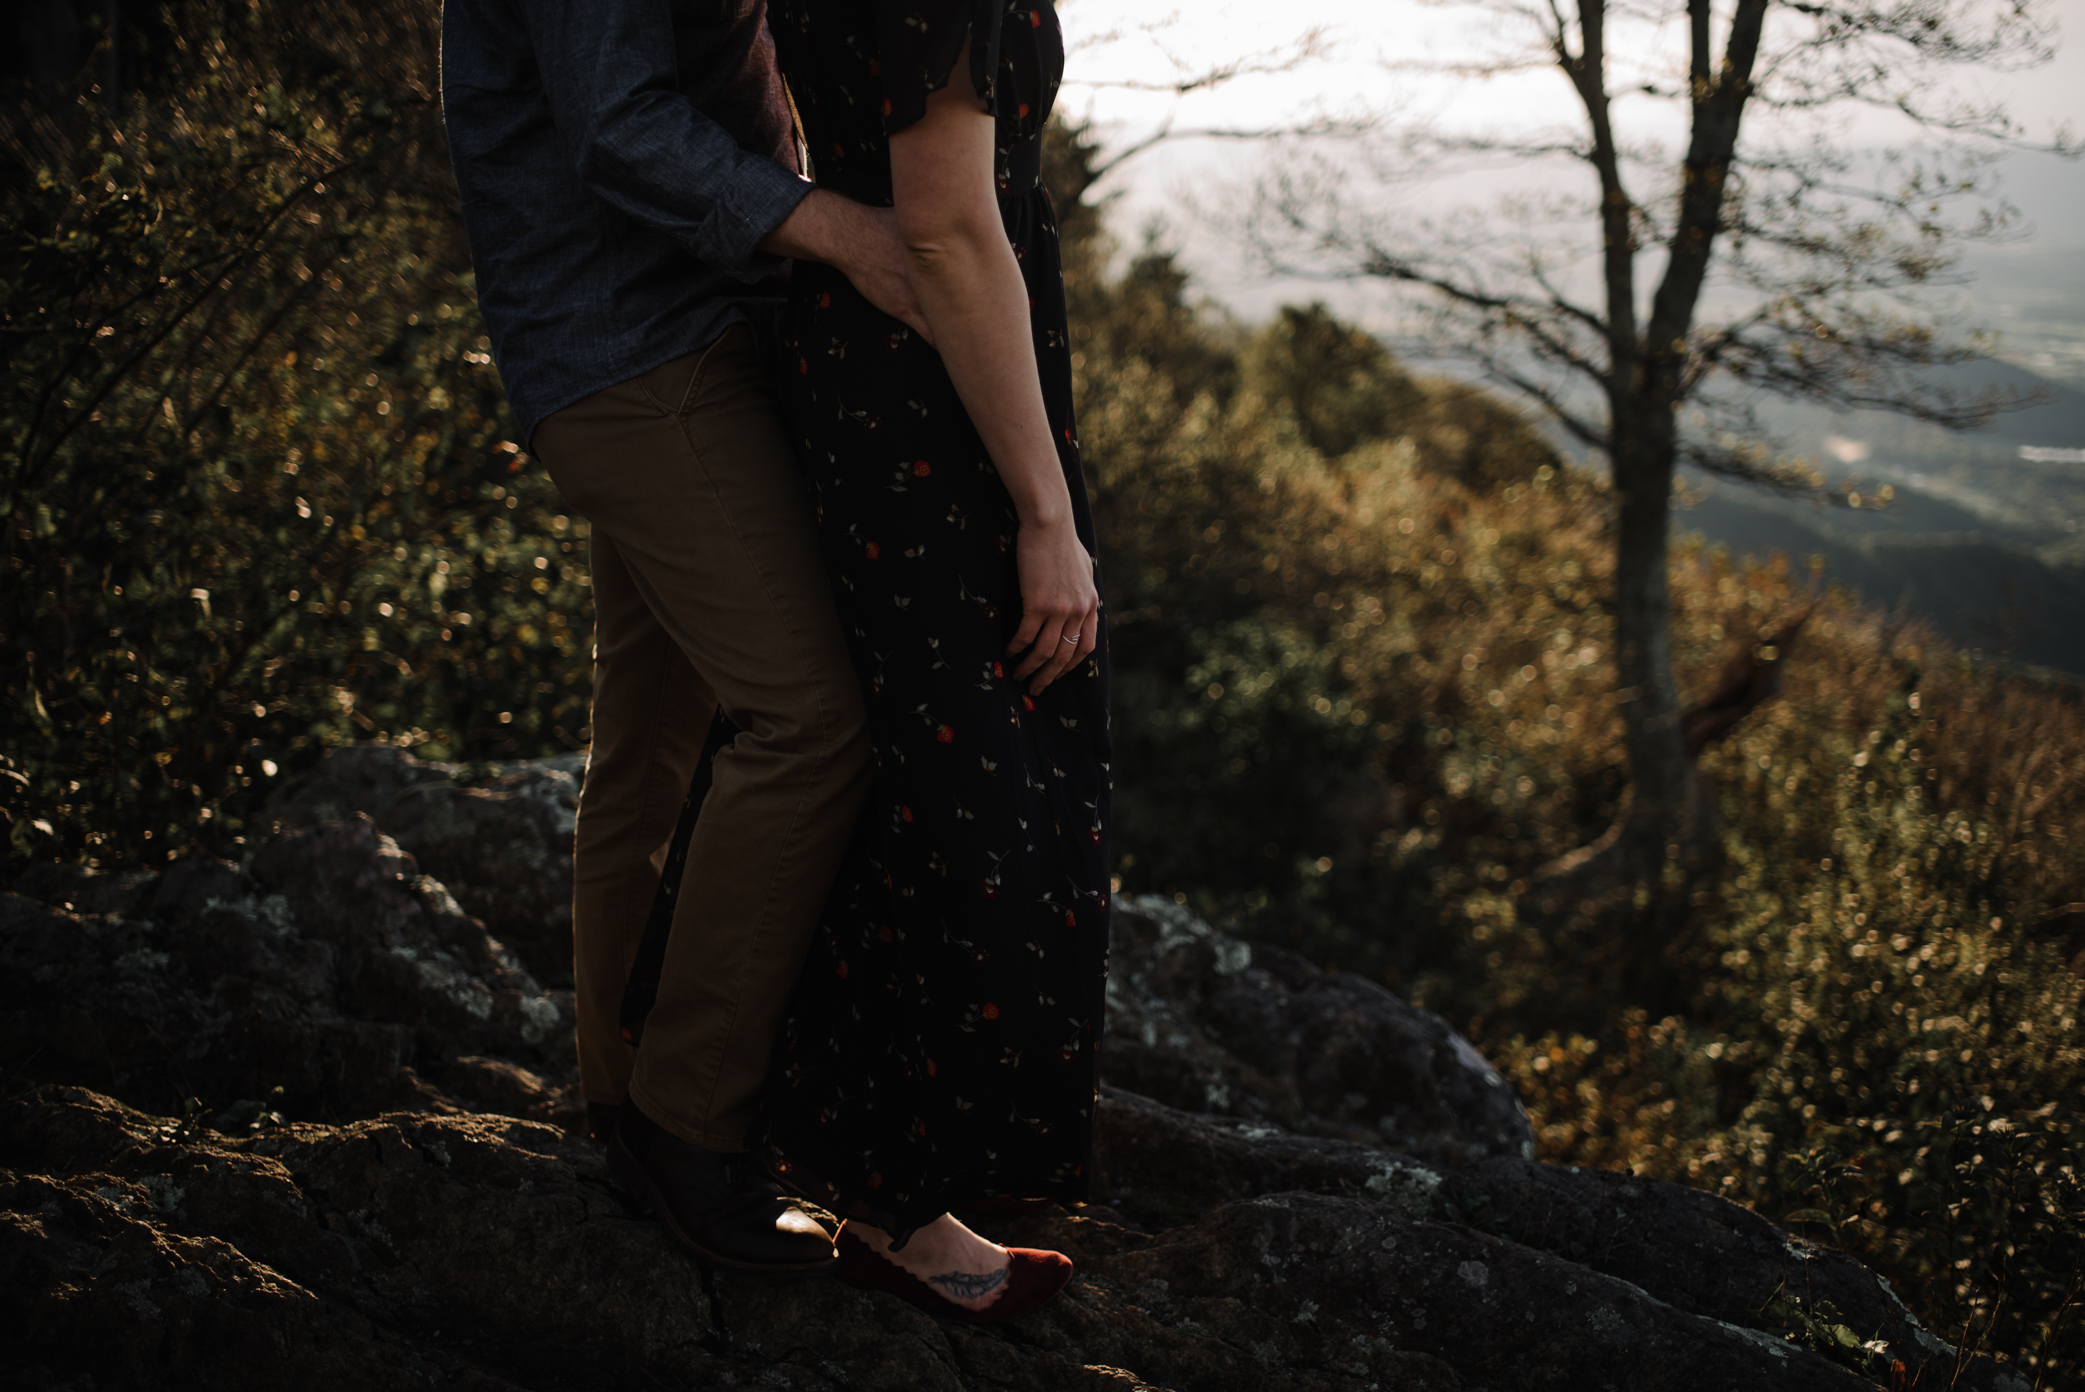 Molly and Zach Engagement Session - Fall Autumn Sunset Couple Adventure Session - Shenandoah National Park - Blue Ridge Parkway Skyline Drive - White Sails Creative_14.JPG